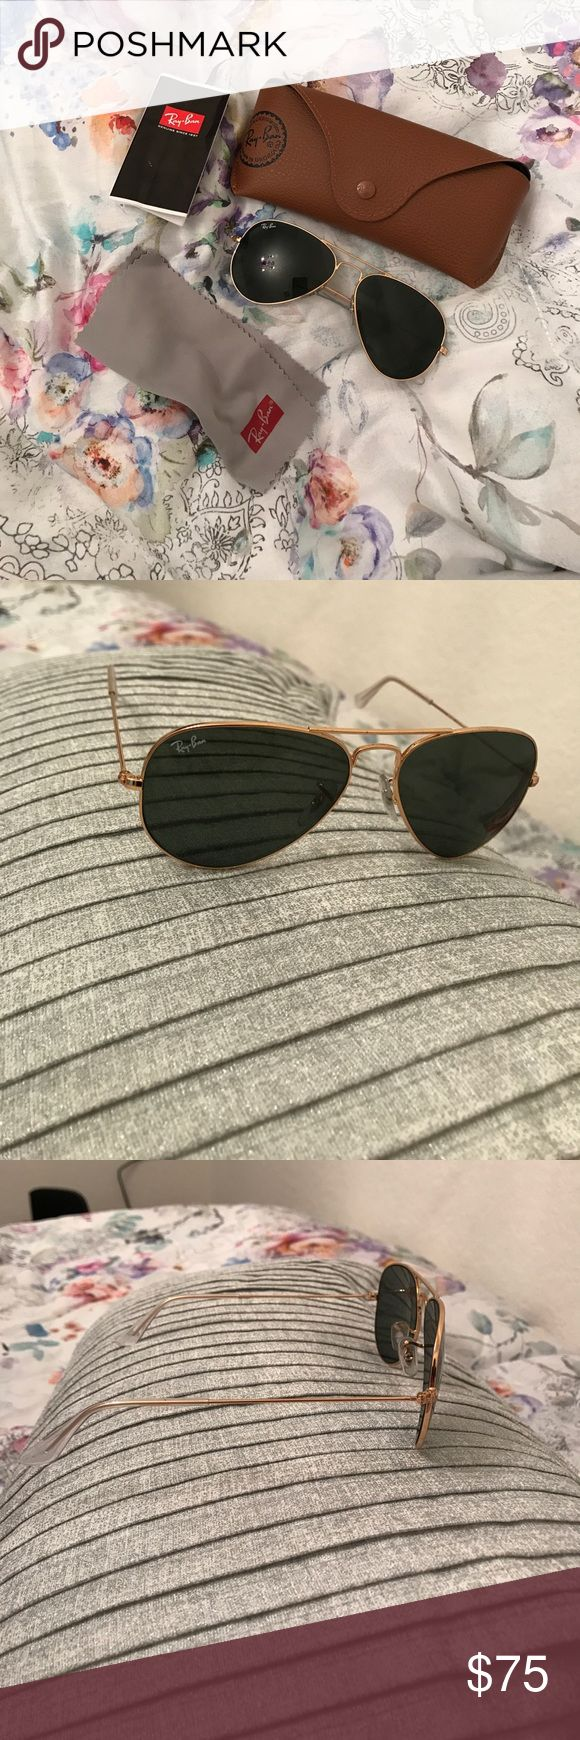 Ray Ban Aviators These are the gold frame Ray Ban Aviators. In great condition, very stylish. Extremely minor scratch pictured that is barely noticeable unless you look very closely. Super cute! Ray-Ban Accessories Glasses